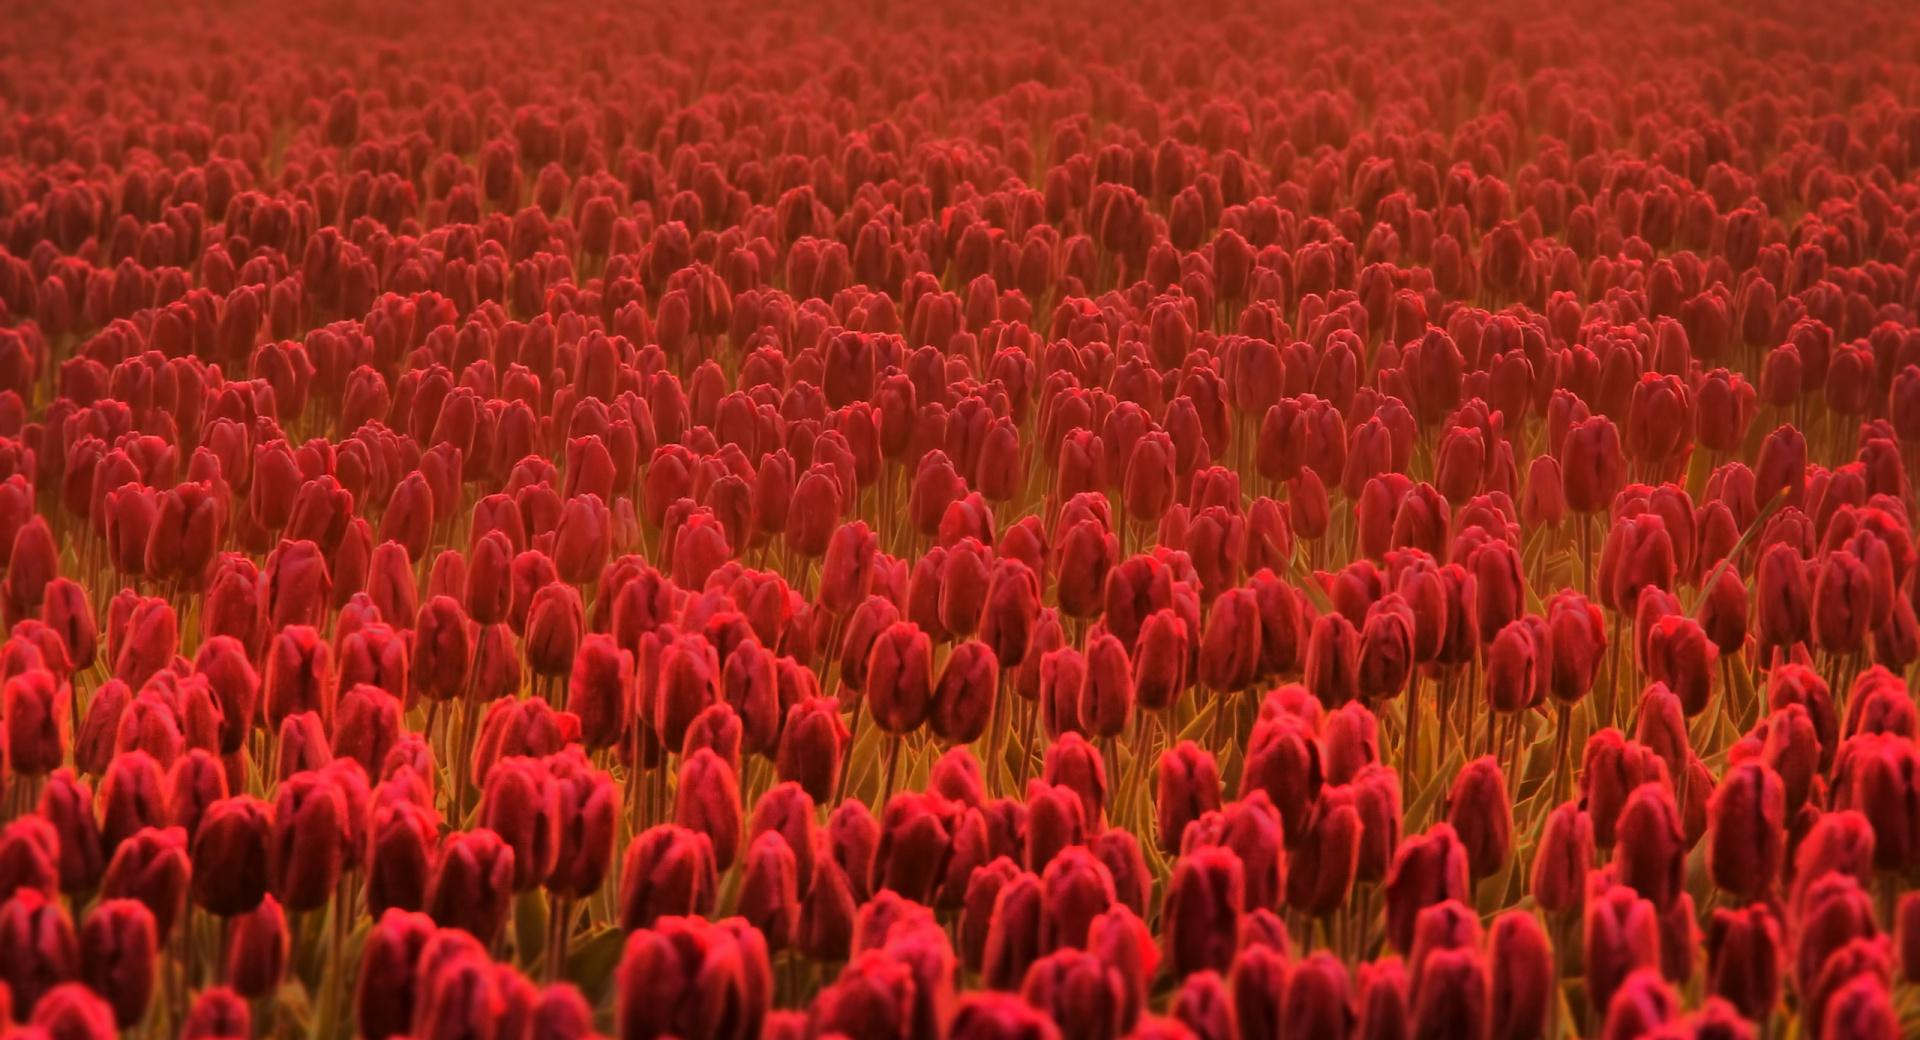 Field Of Scarlet Tulips wallpapers HD quality